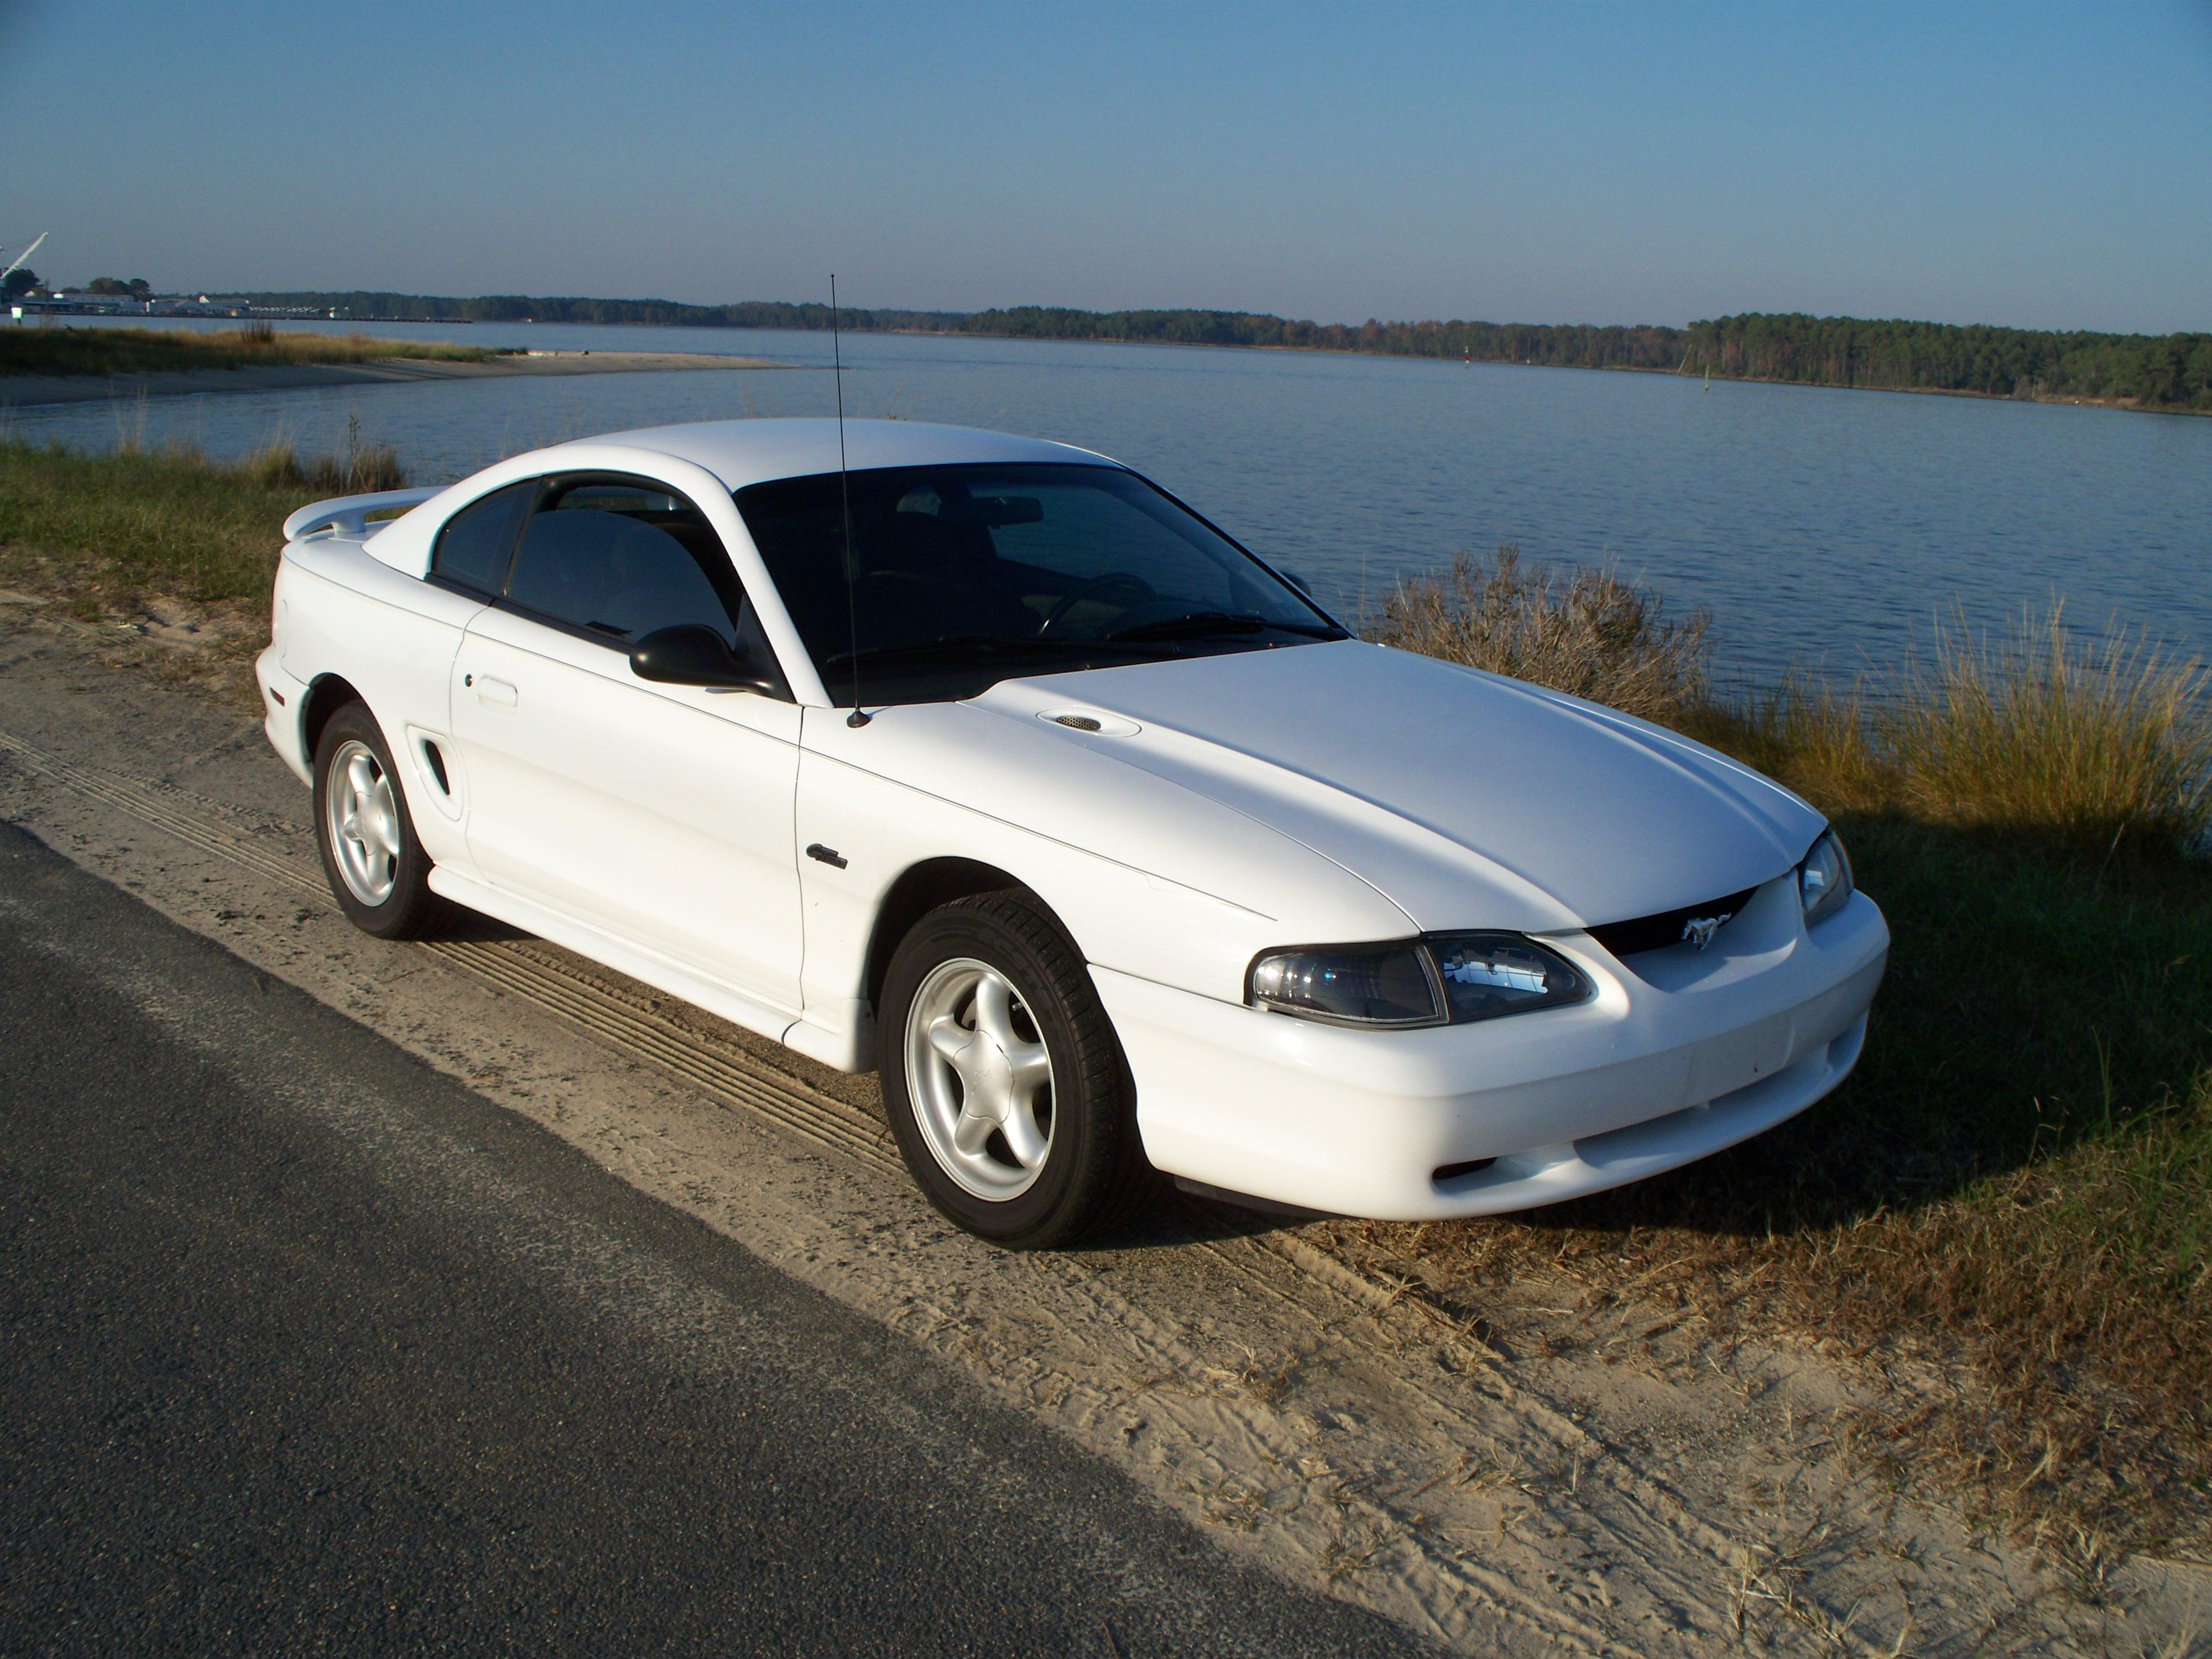 Sass551 1996 Ford Mustang Specs, Photos, Modification Info